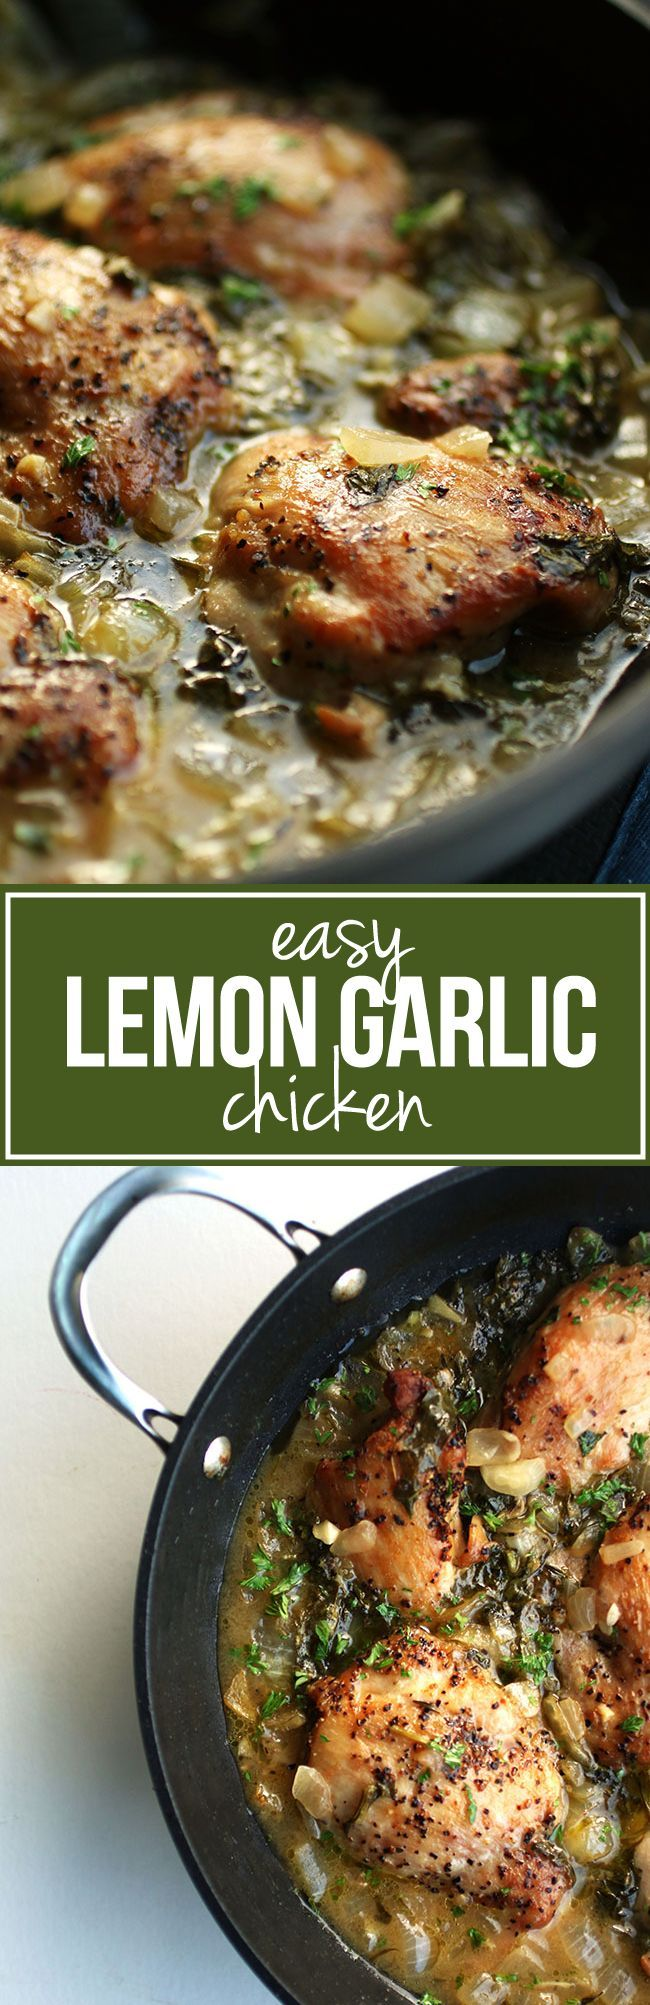 Quick easy and healthy chicken recipes